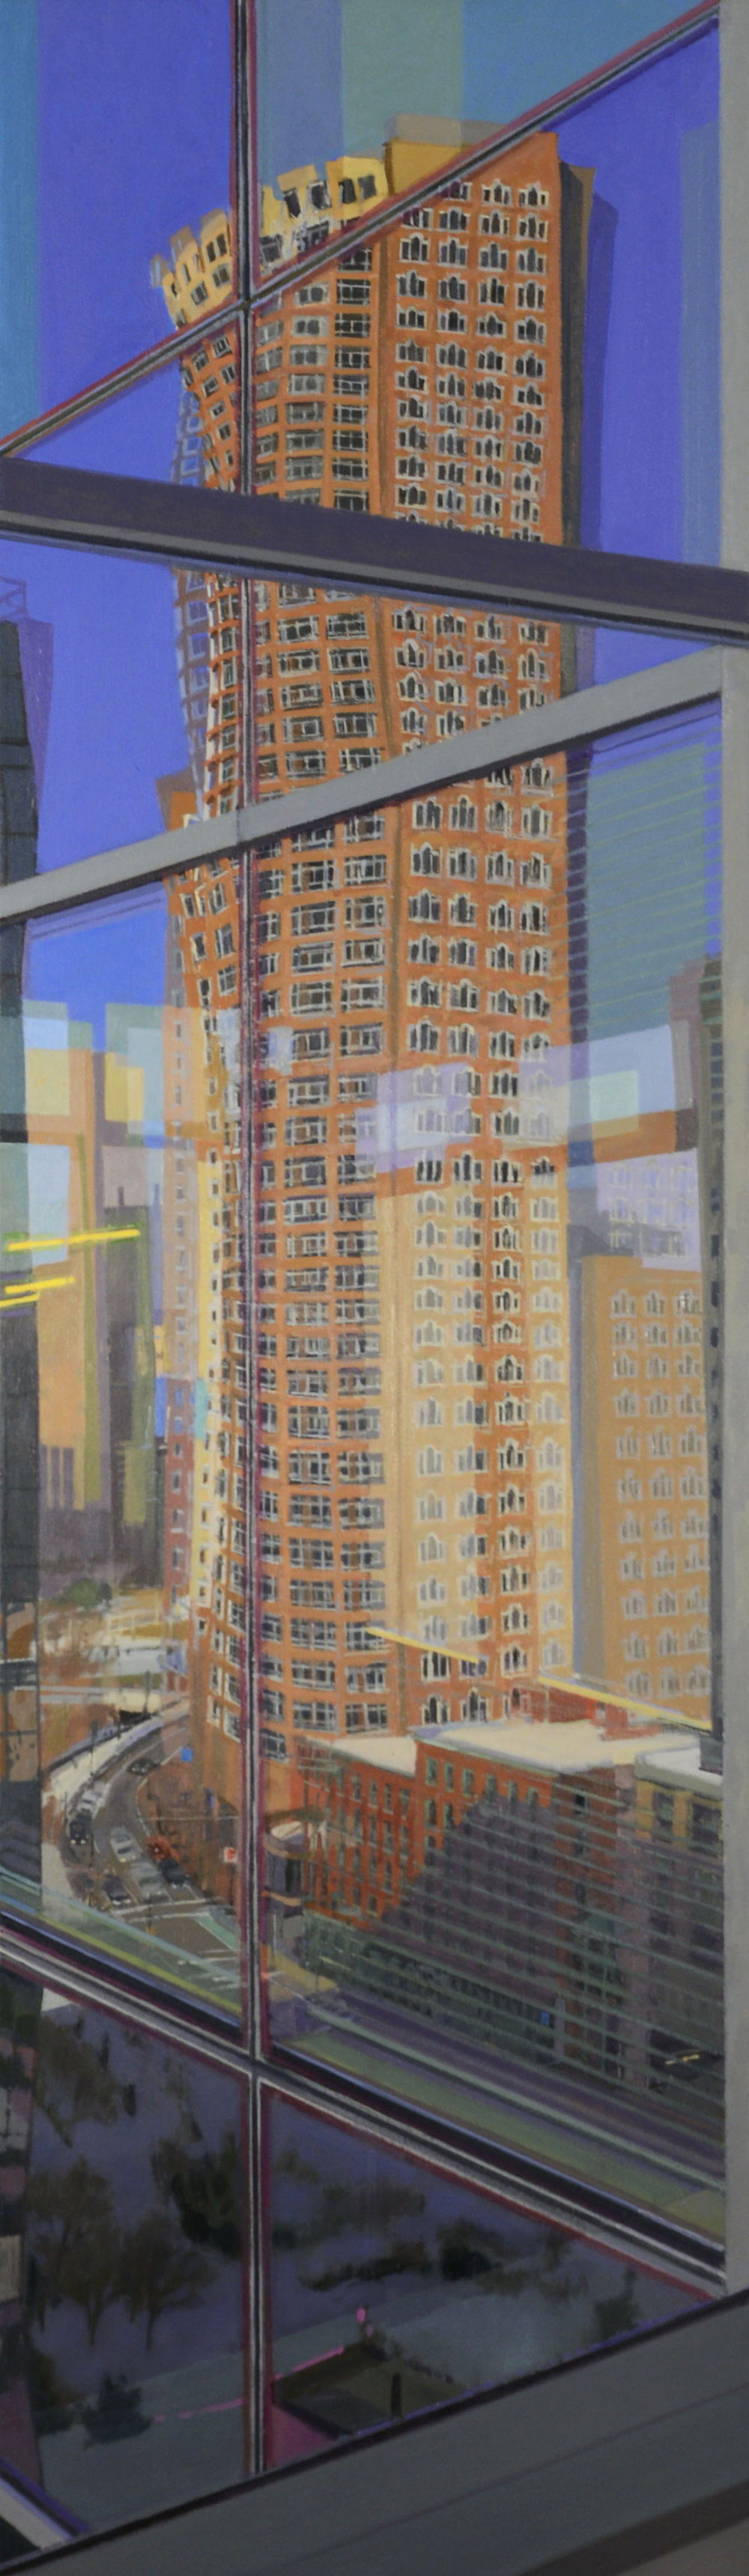 Richard Raiselis  One International Place , 2014 oil on linen, 48 x 14 inches courtesy of Gallery NAGA, Boston and the artist